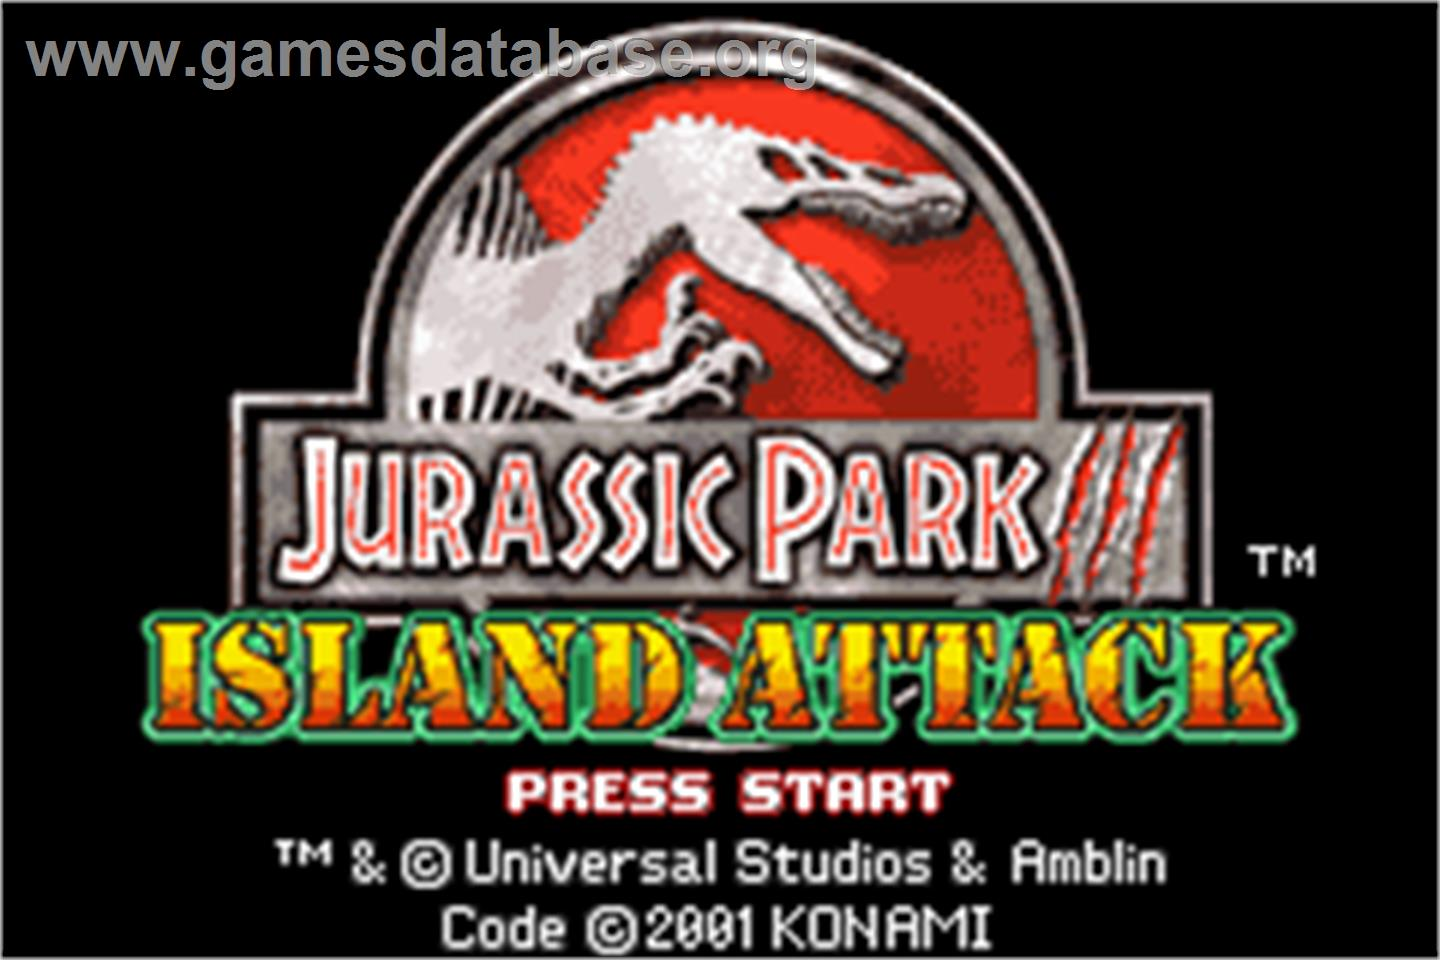 of Jurassic Park III: Island Attack on the Nintendo Game Boy Advance